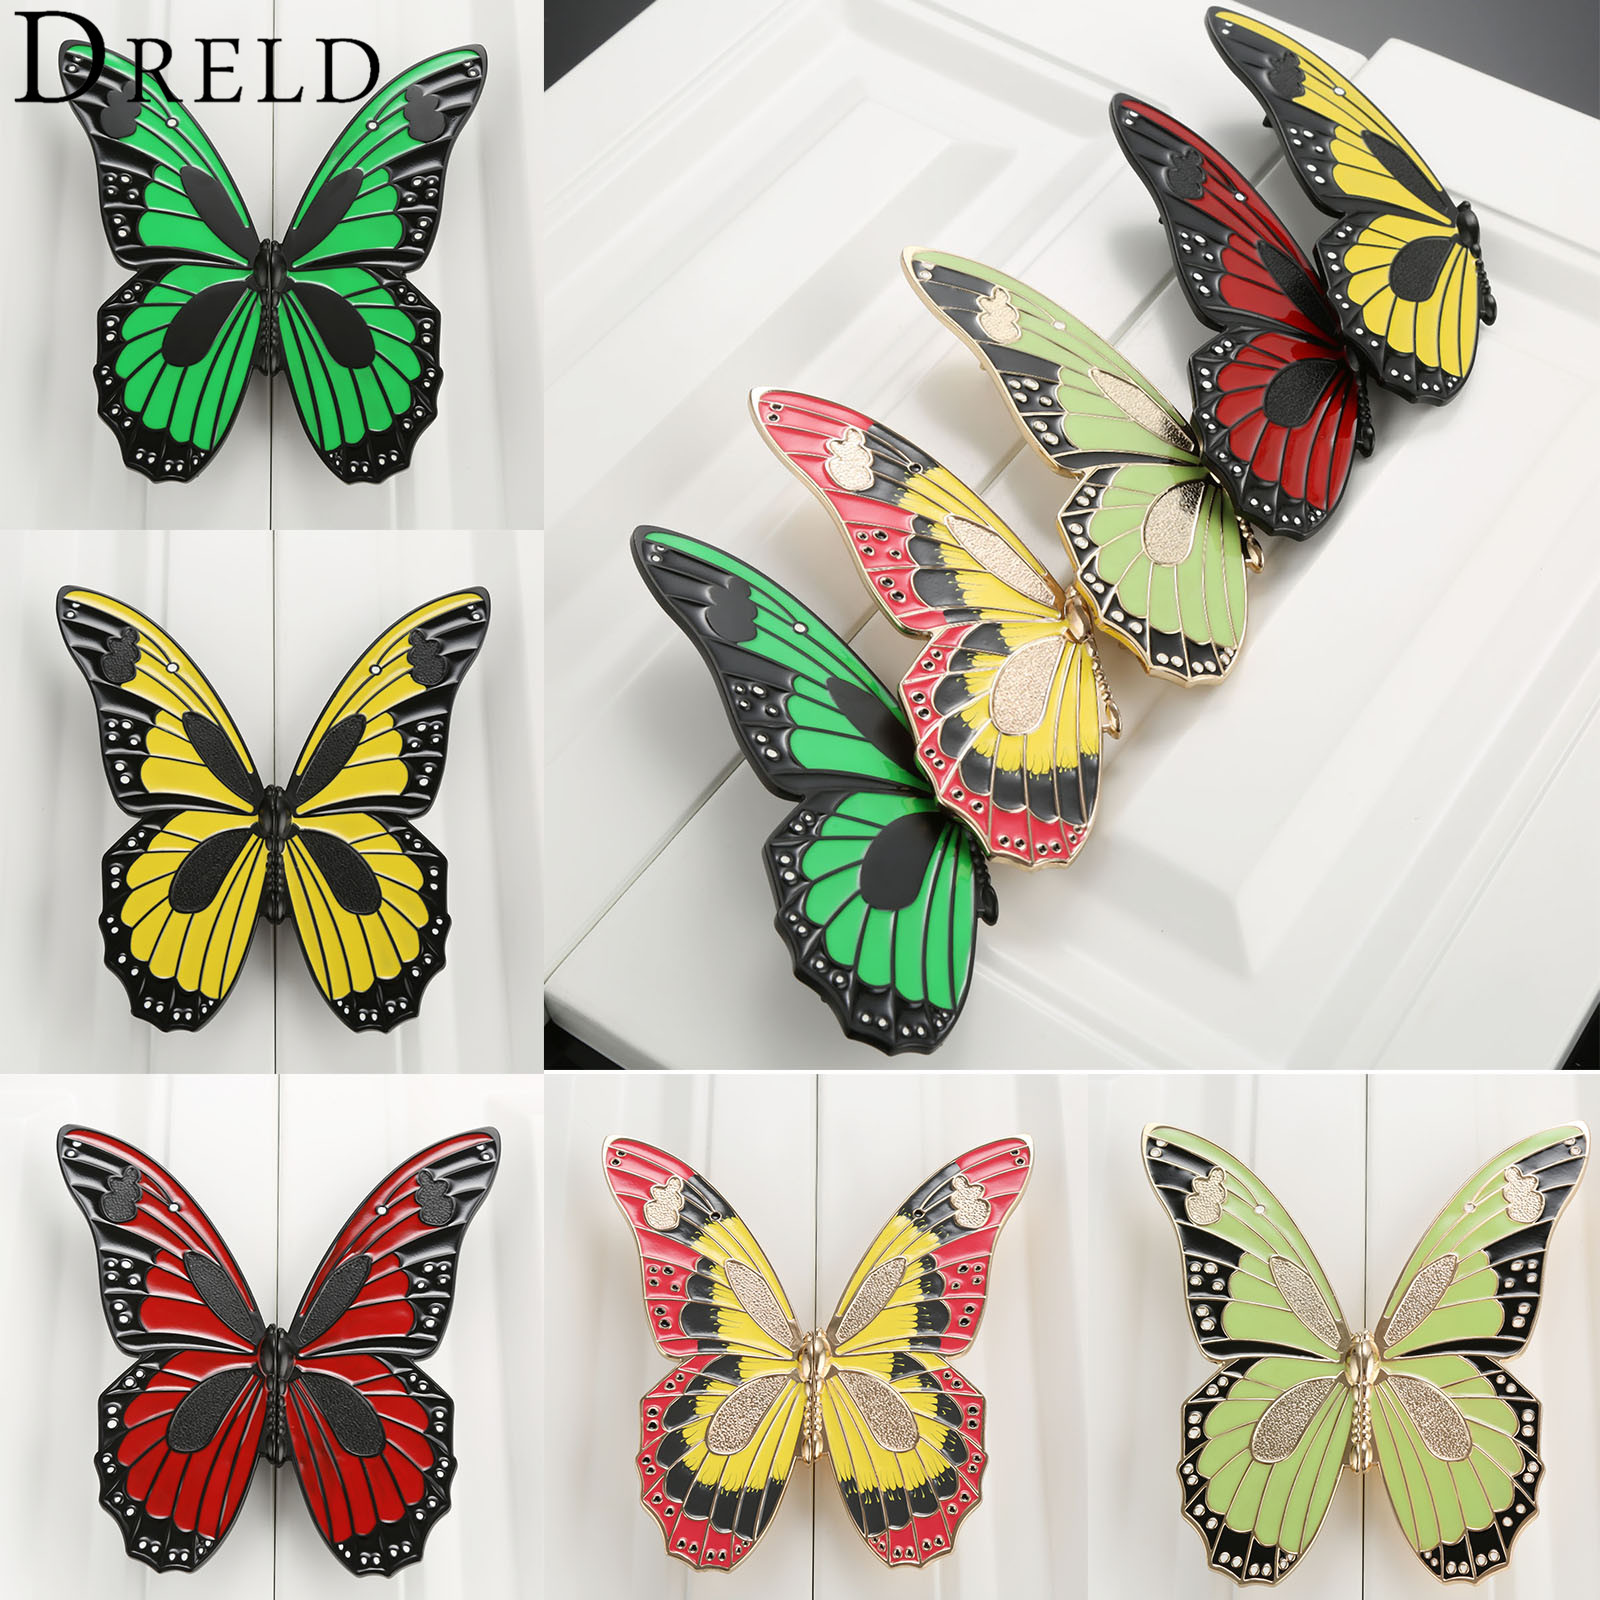 DRELD 1Pc Butterfly Furniture Handles Cabinet Knobs and Handles Zinc Alloy Door Knob Cupboard Dresser Drawer Kitchen Pull Handle 1 pair 96mm vintage furniture cupboard wardrobe handles and knobs antique bronze alloy kitchen cabinet door drawer pull handle